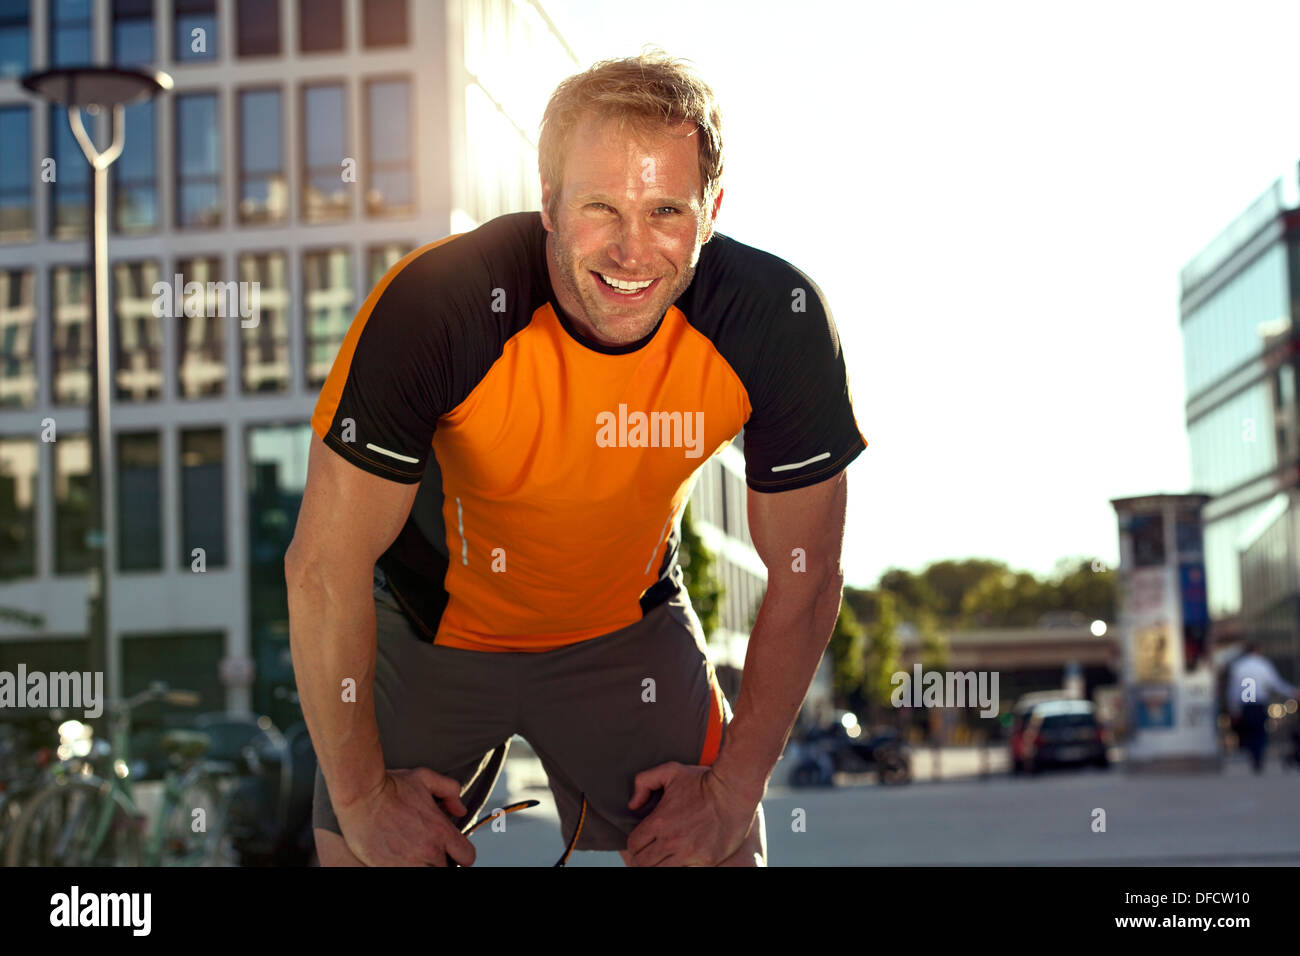 Smiling athletic man outdoors - Stock Image